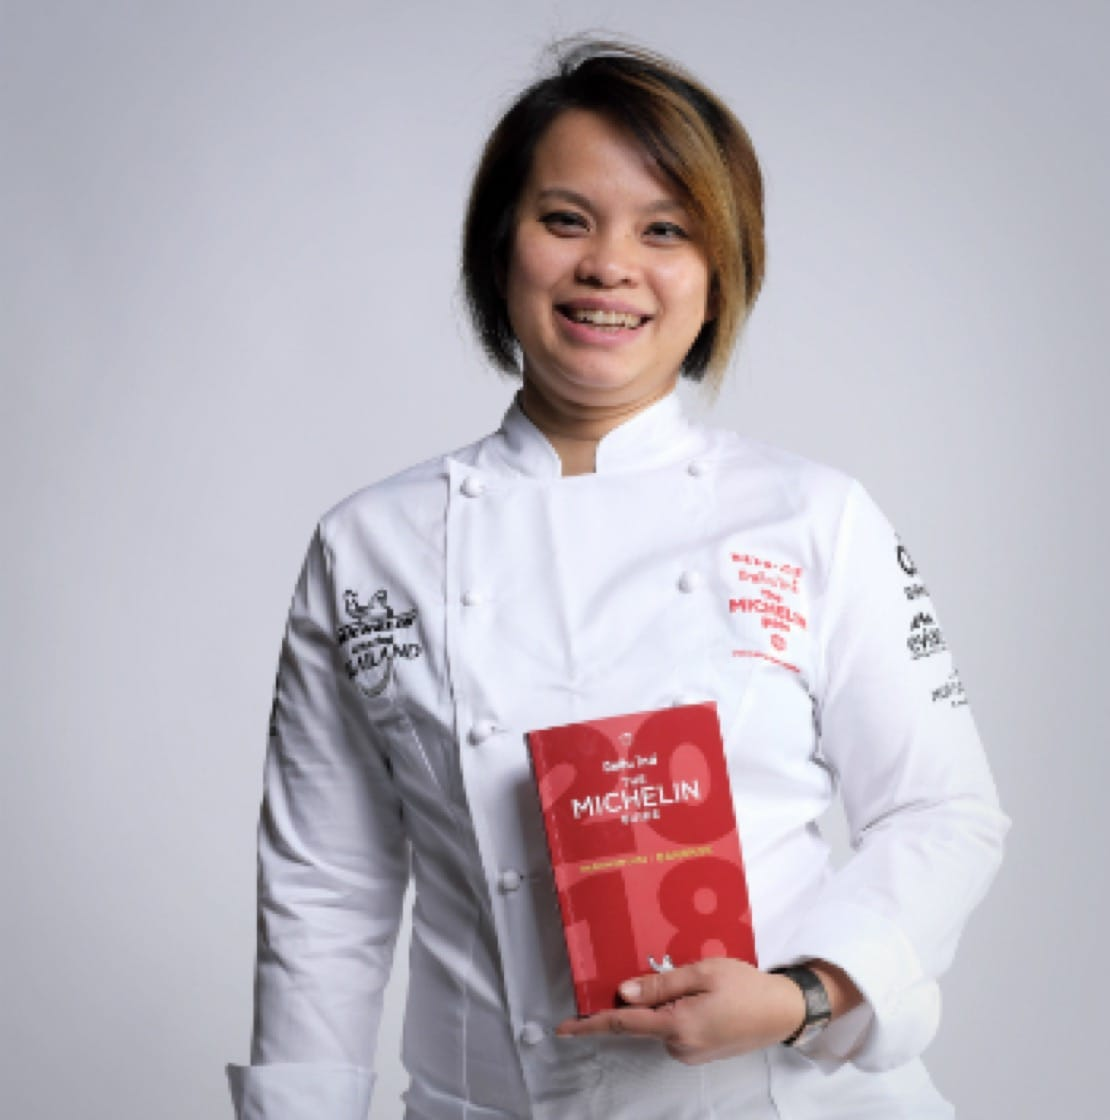 https://d3h1lg3ksw6i6b.cloudfront.net/media/image/2017/12/14/d26b3f6e2b984bd99fe83ee6bb99704c_Chef-Bee-Michelin-Guide-Bangkok.jpg